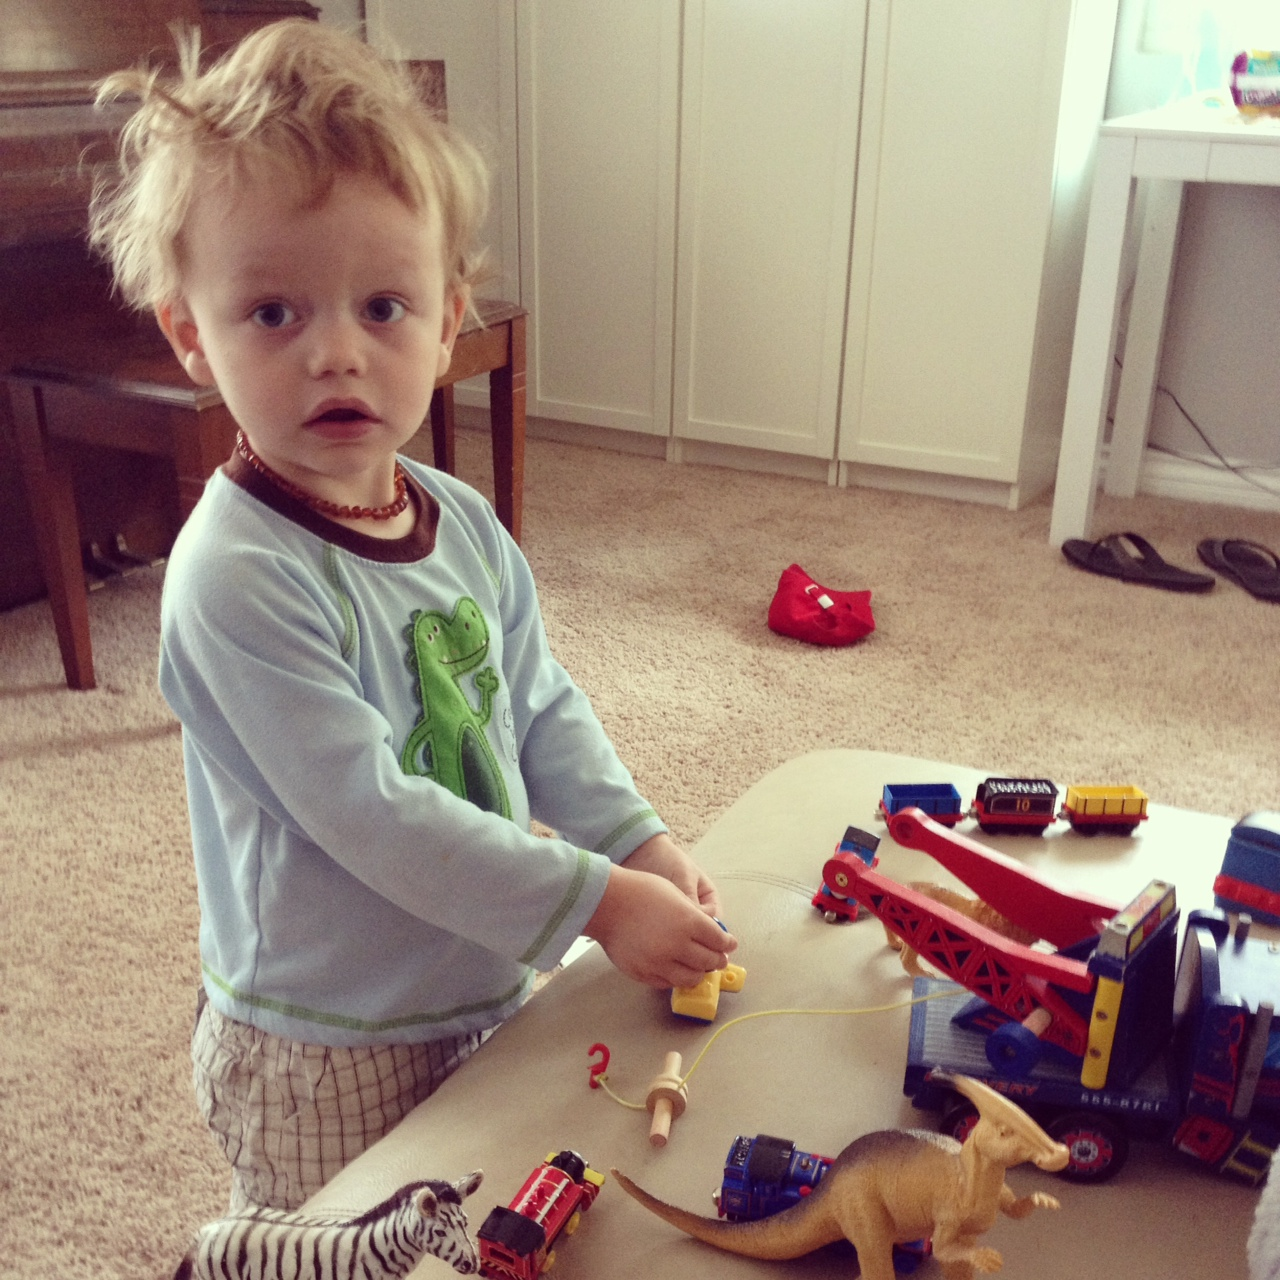 Gregory playing with trains